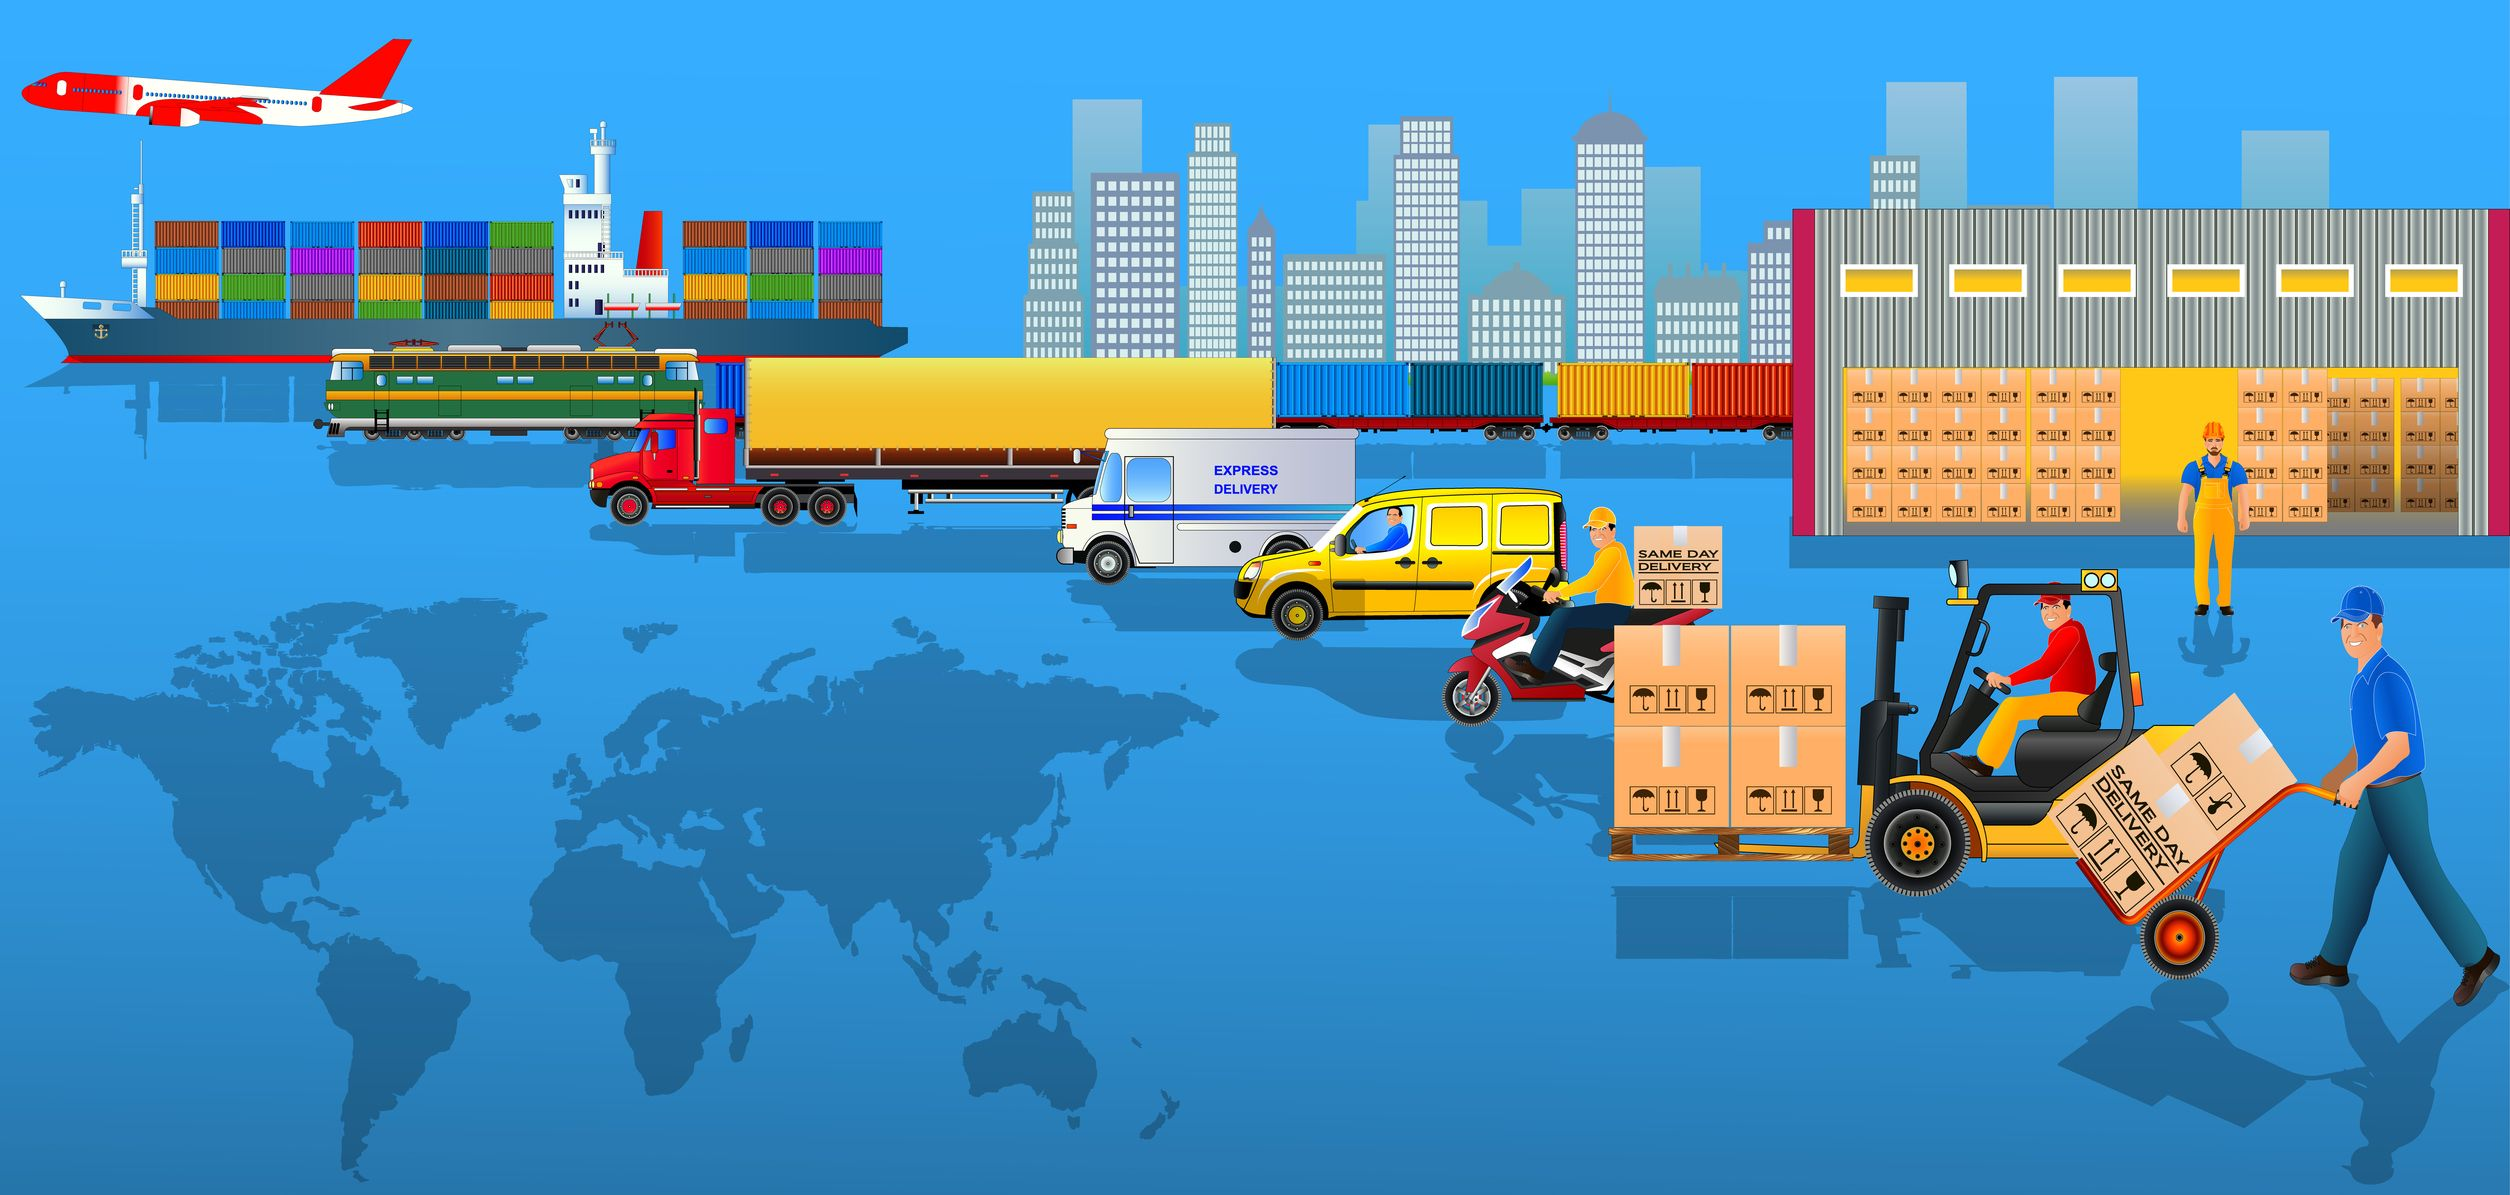 5 Major Logistics Trends Shaping Logistics Management In